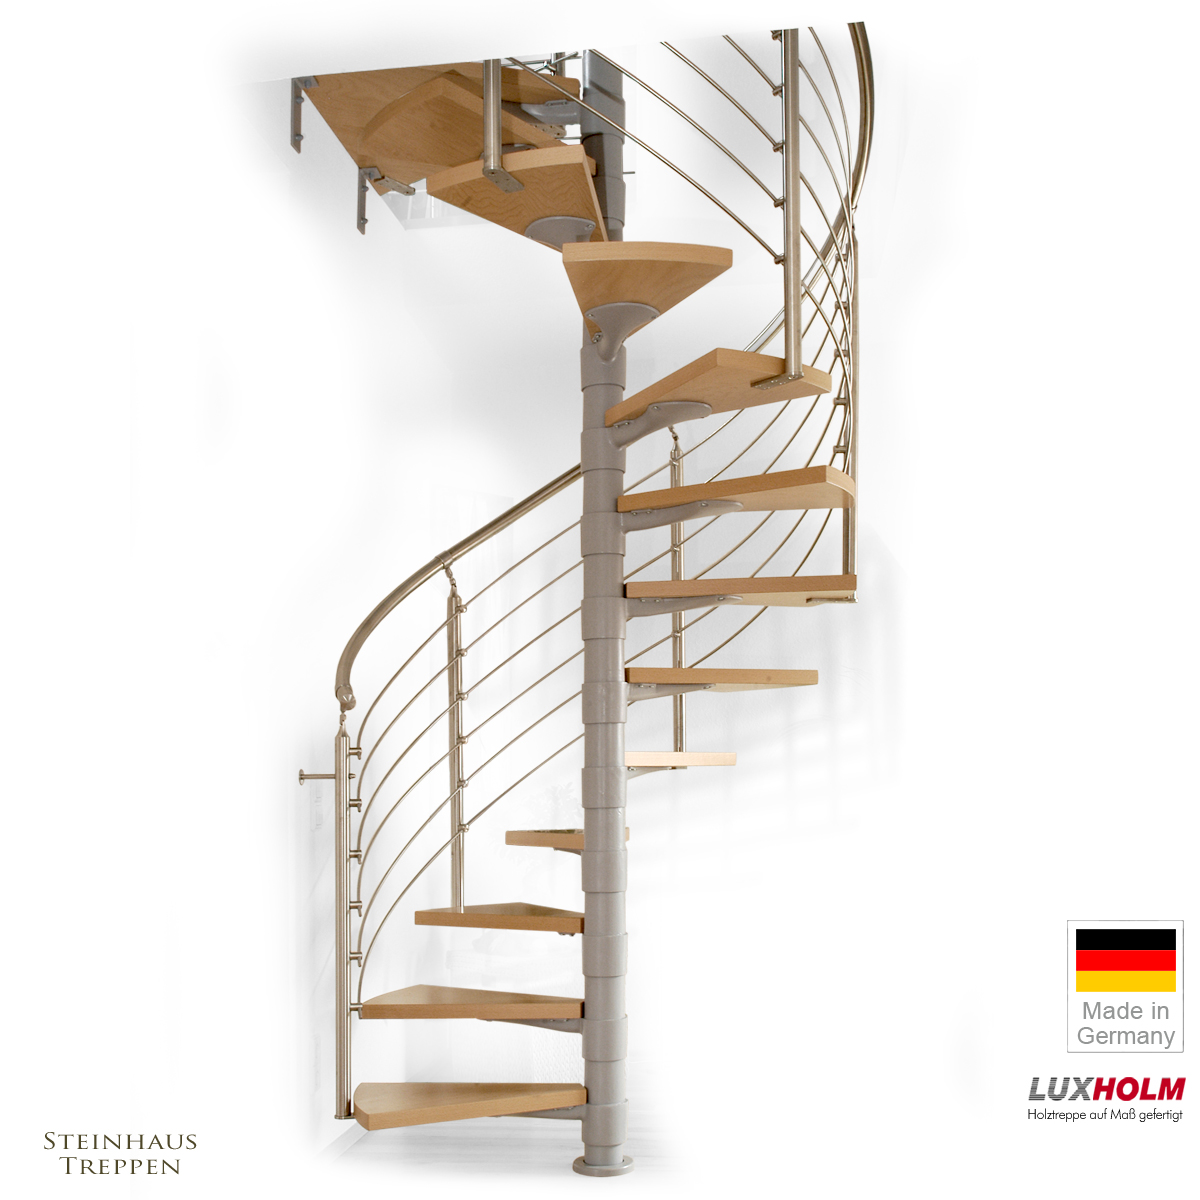 wendeltreppe luxholm rondo mit holzstufen 140 cm steinhaus treppen treppen g nstig kaufen. Black Bedroom Furniture Sets. Home Design Ideas